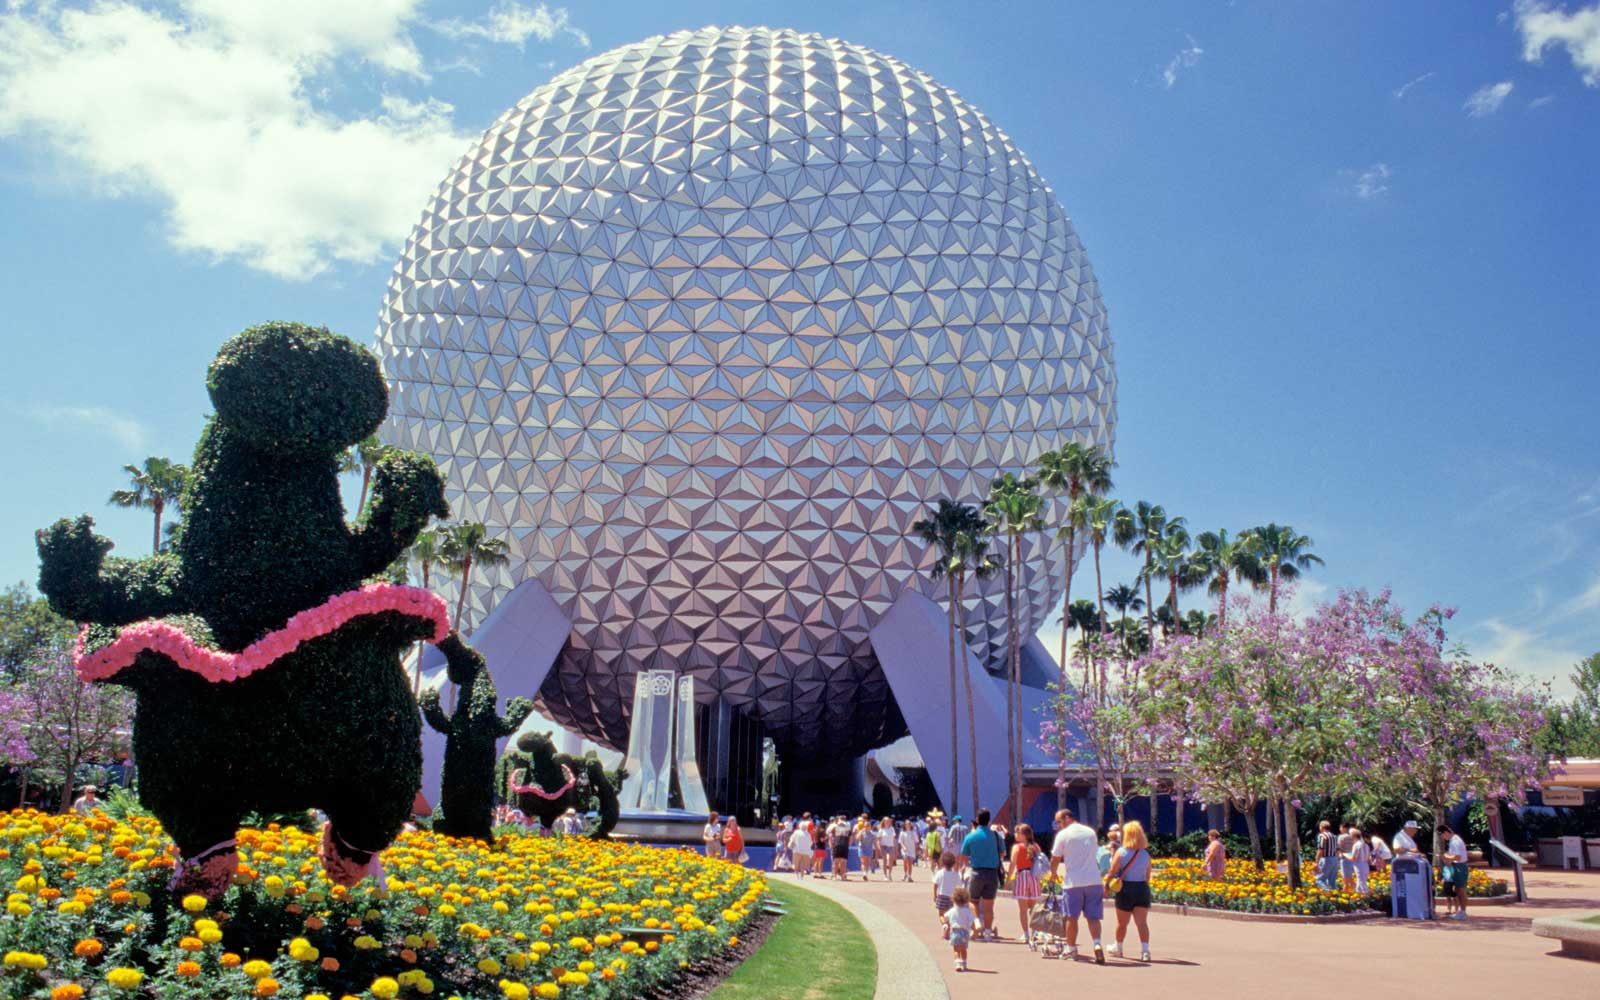 Florida, Orlando, Epcot Center, View Including Sphere And Topiary.